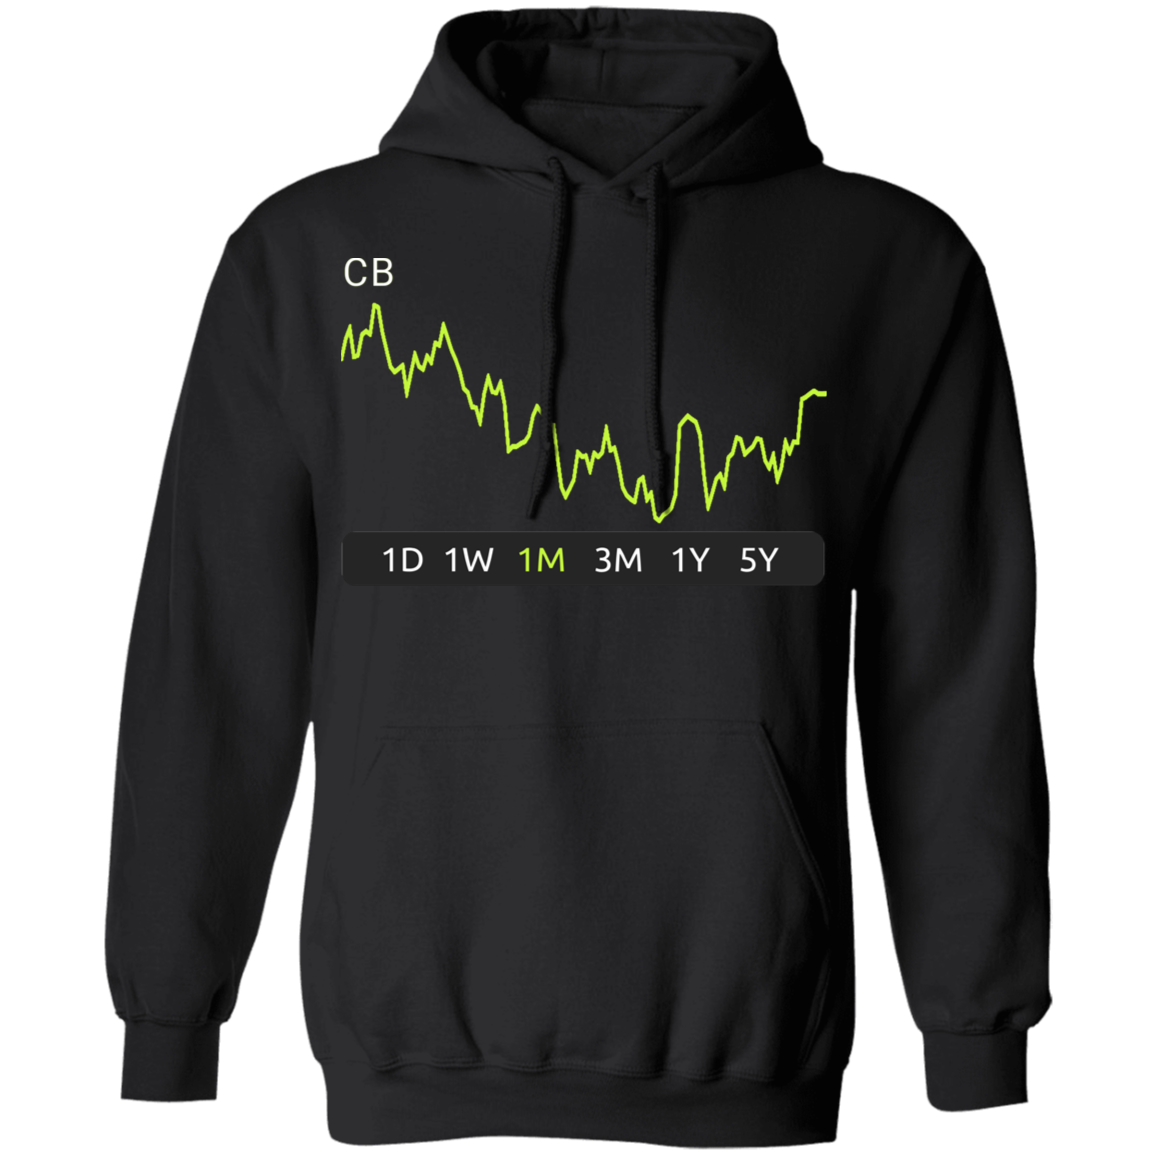 CB Stock 1m Pullover Hoodie